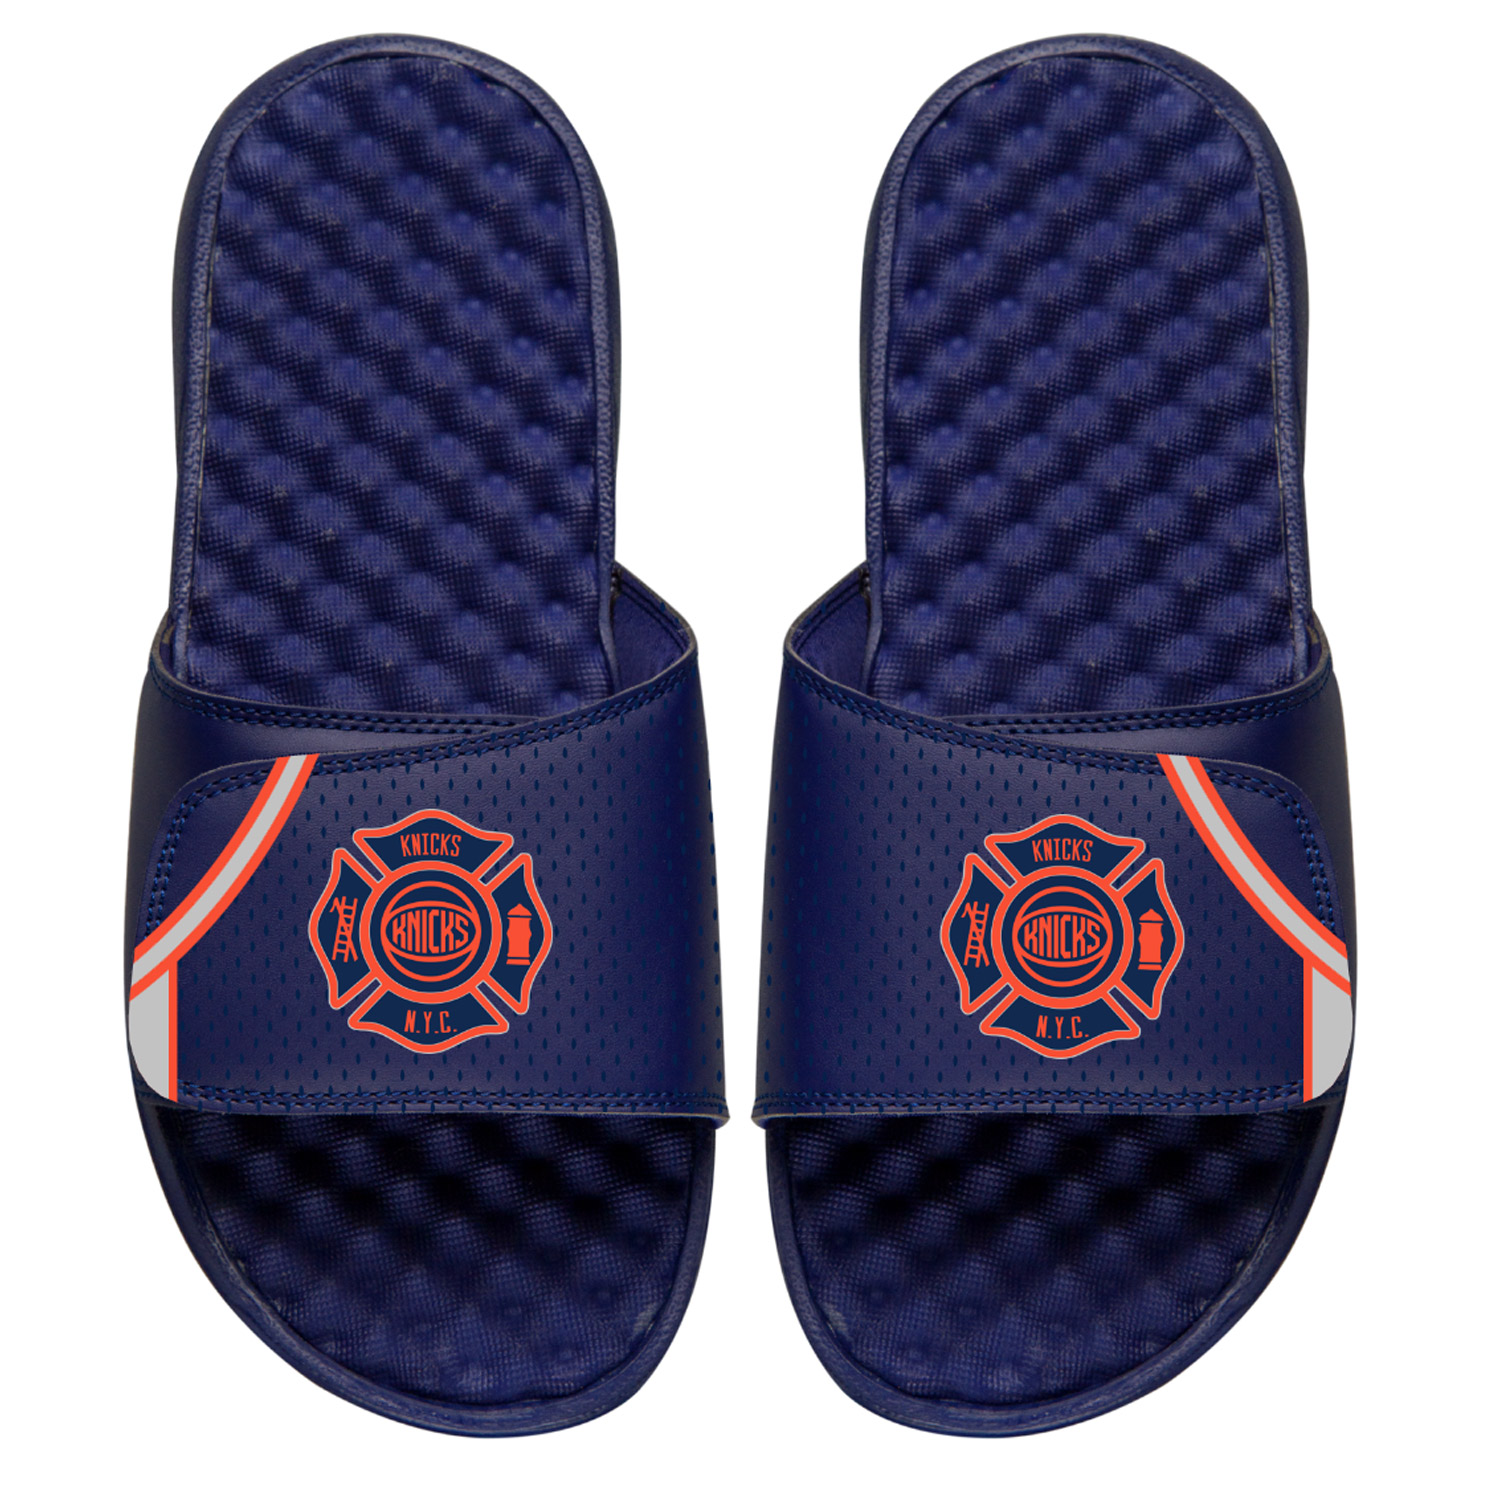 sale retailer bf4f9 d19c4 New York Knicks ISlide Youth City Edition Slide Sandals - Navy